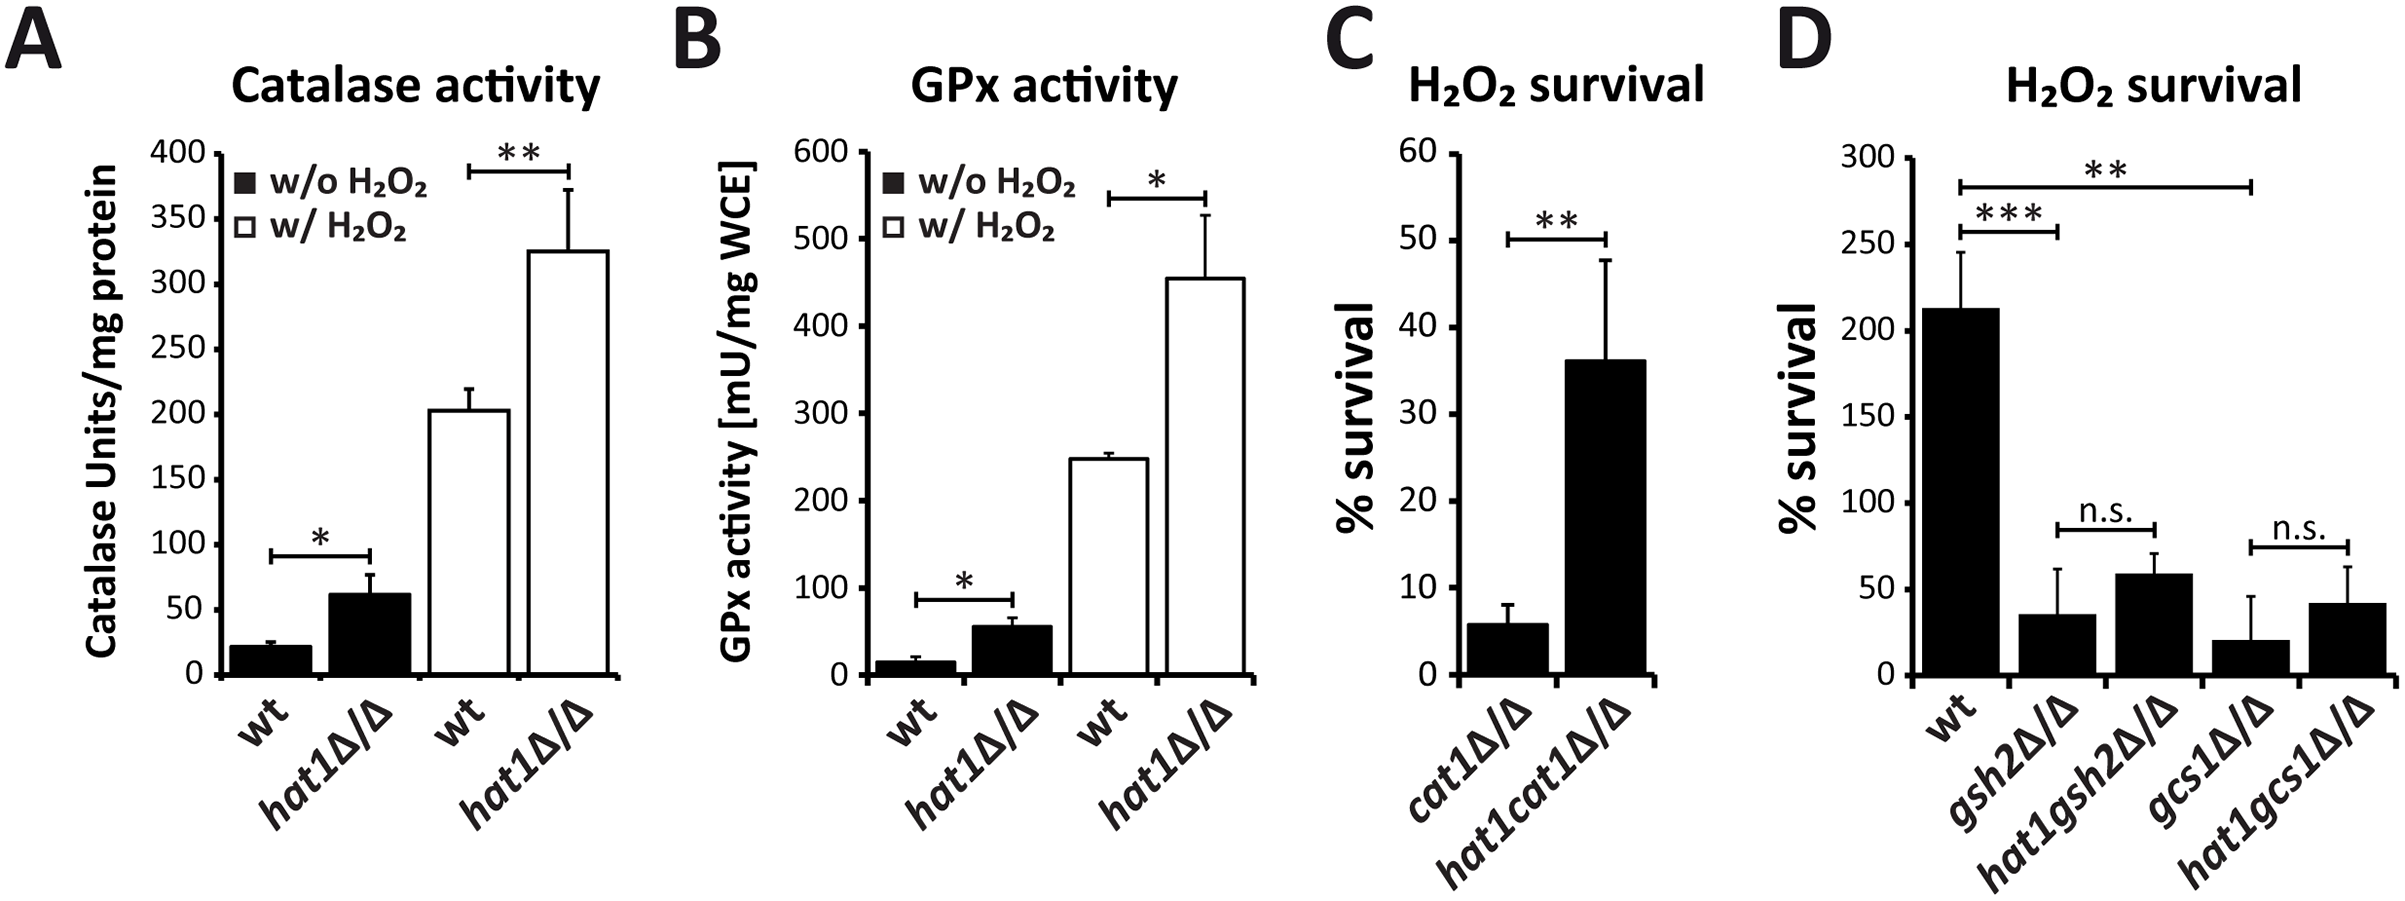 Loss of Hat1 raises antioxidant enzyme activity and glutathione-mediated H<sub>2</sub>O<sub>2</sub> resistance.